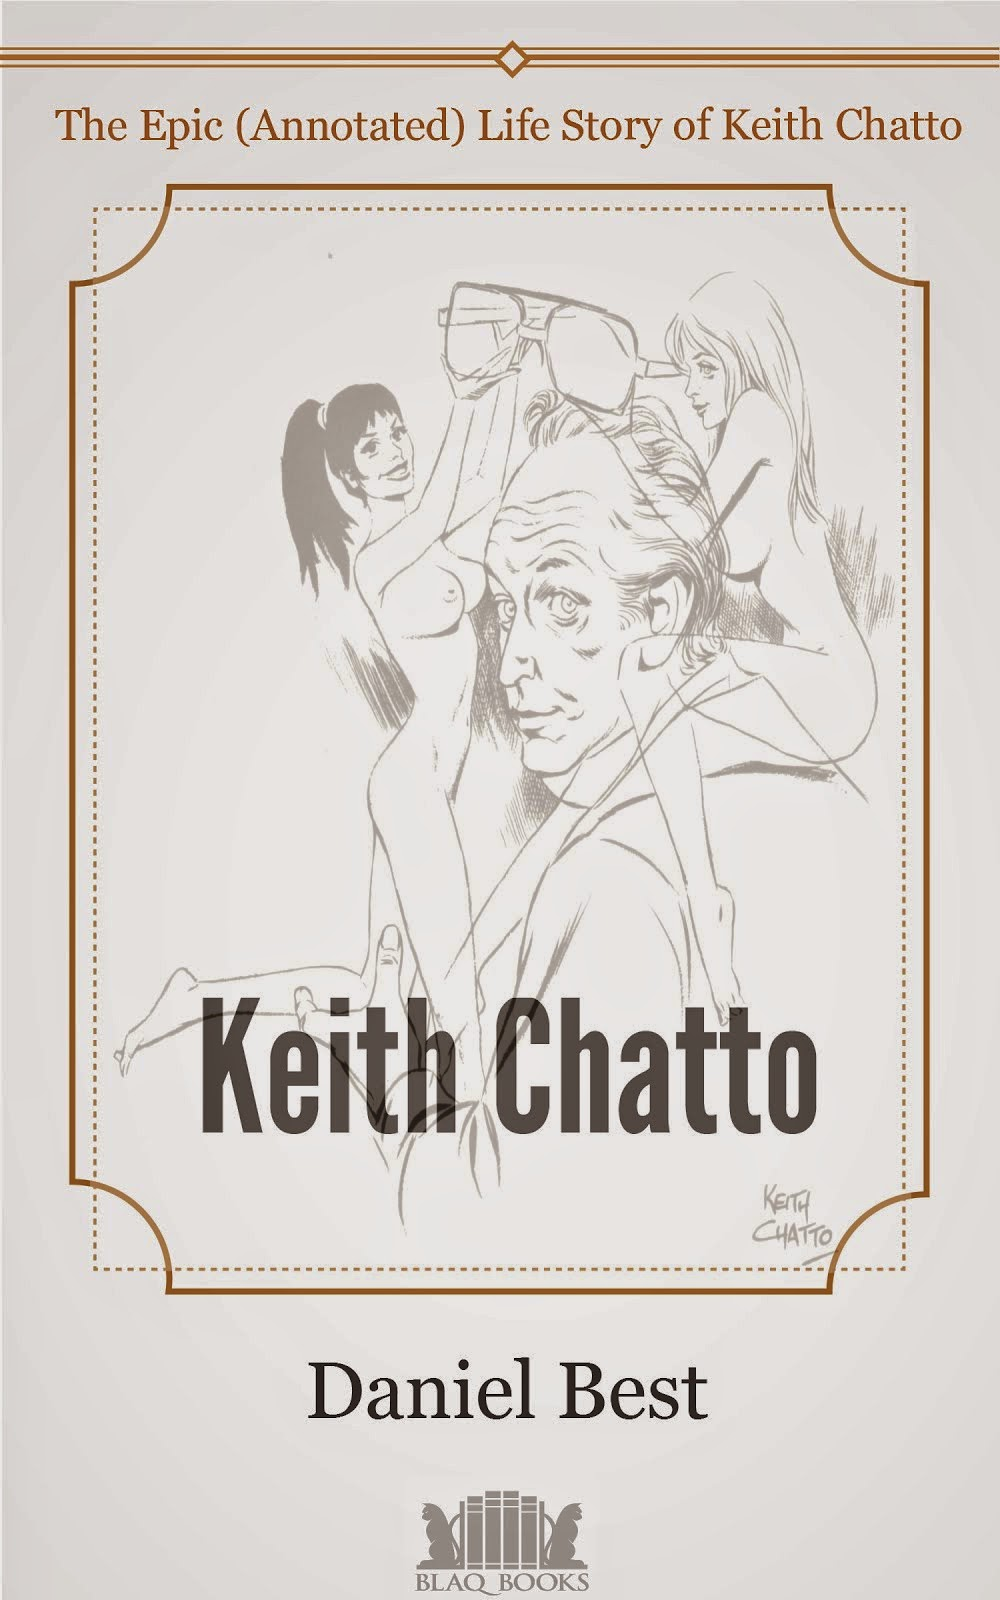 The Epic (Annotated) Life Story of Keith Chatto